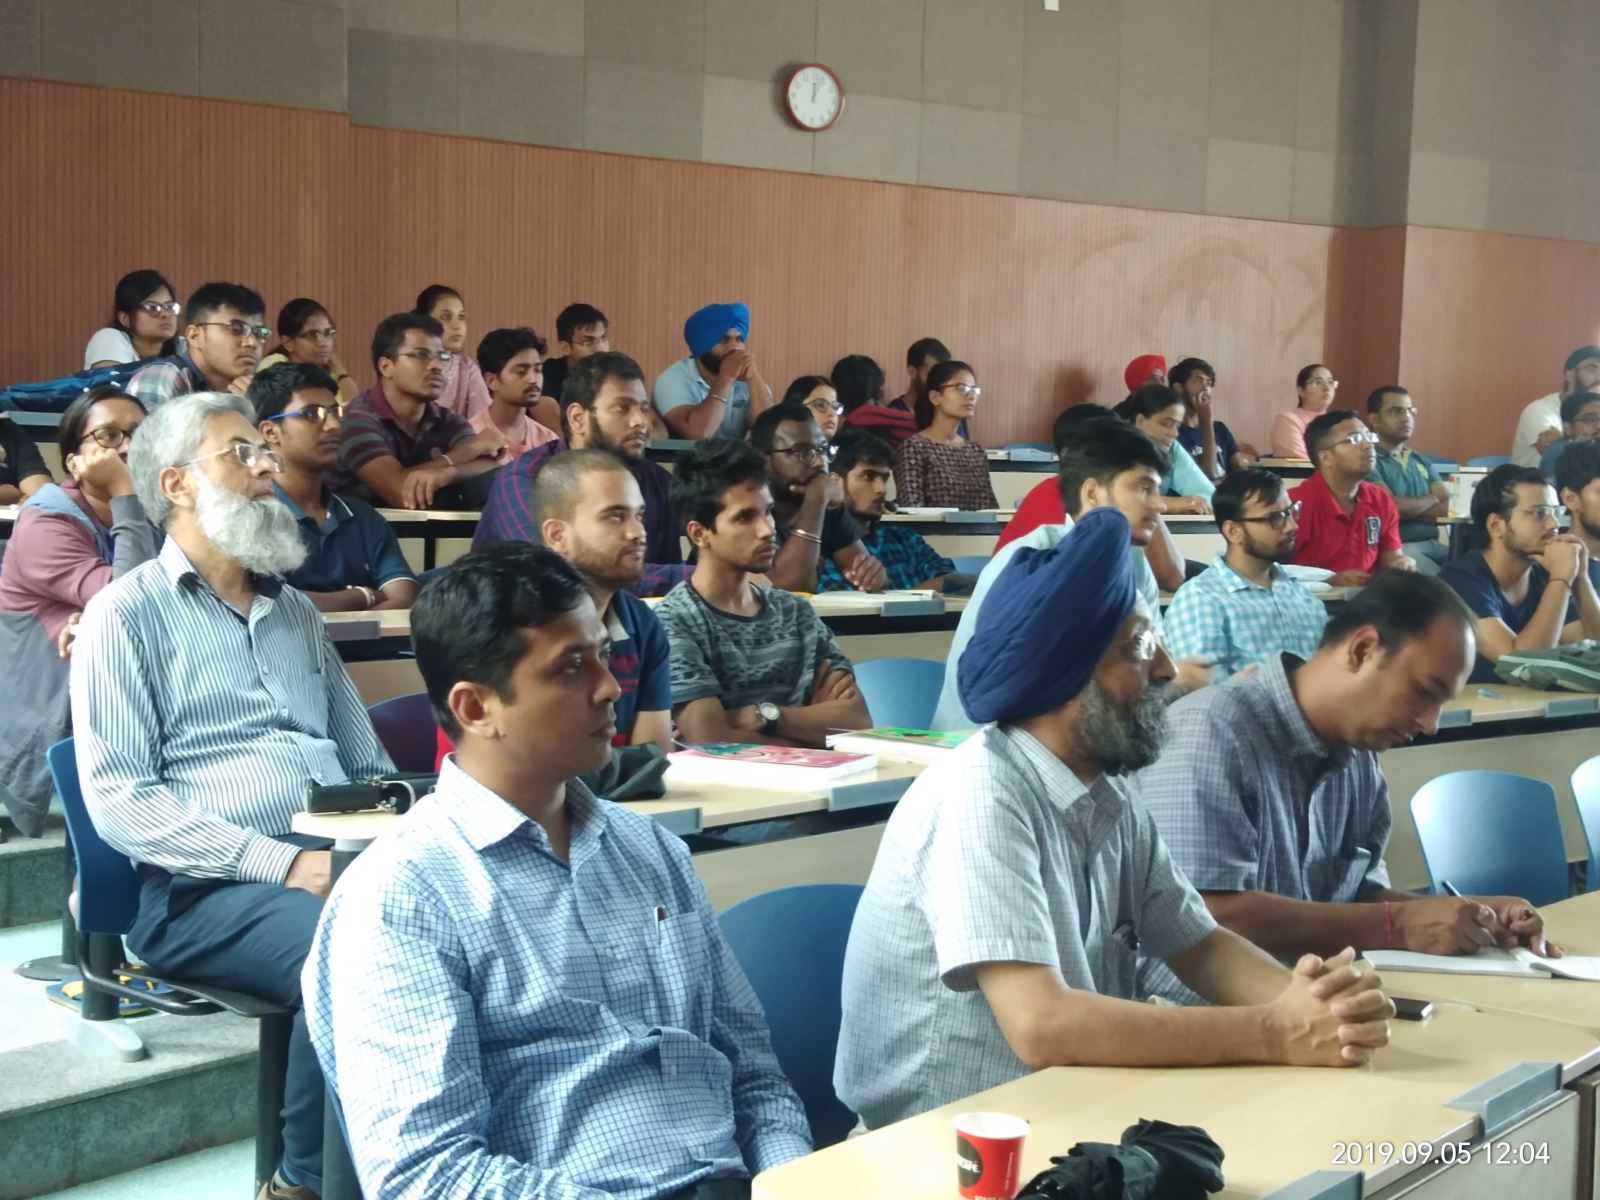 """Talk on """"Research Opportunities on AI, IoT and Big Data"""" by Professor Ren-Song Ko from National Chung Cheng University, Taiwan at the Indian Institute of Technology (IIT) Ropar, India on September 5, 2019."""